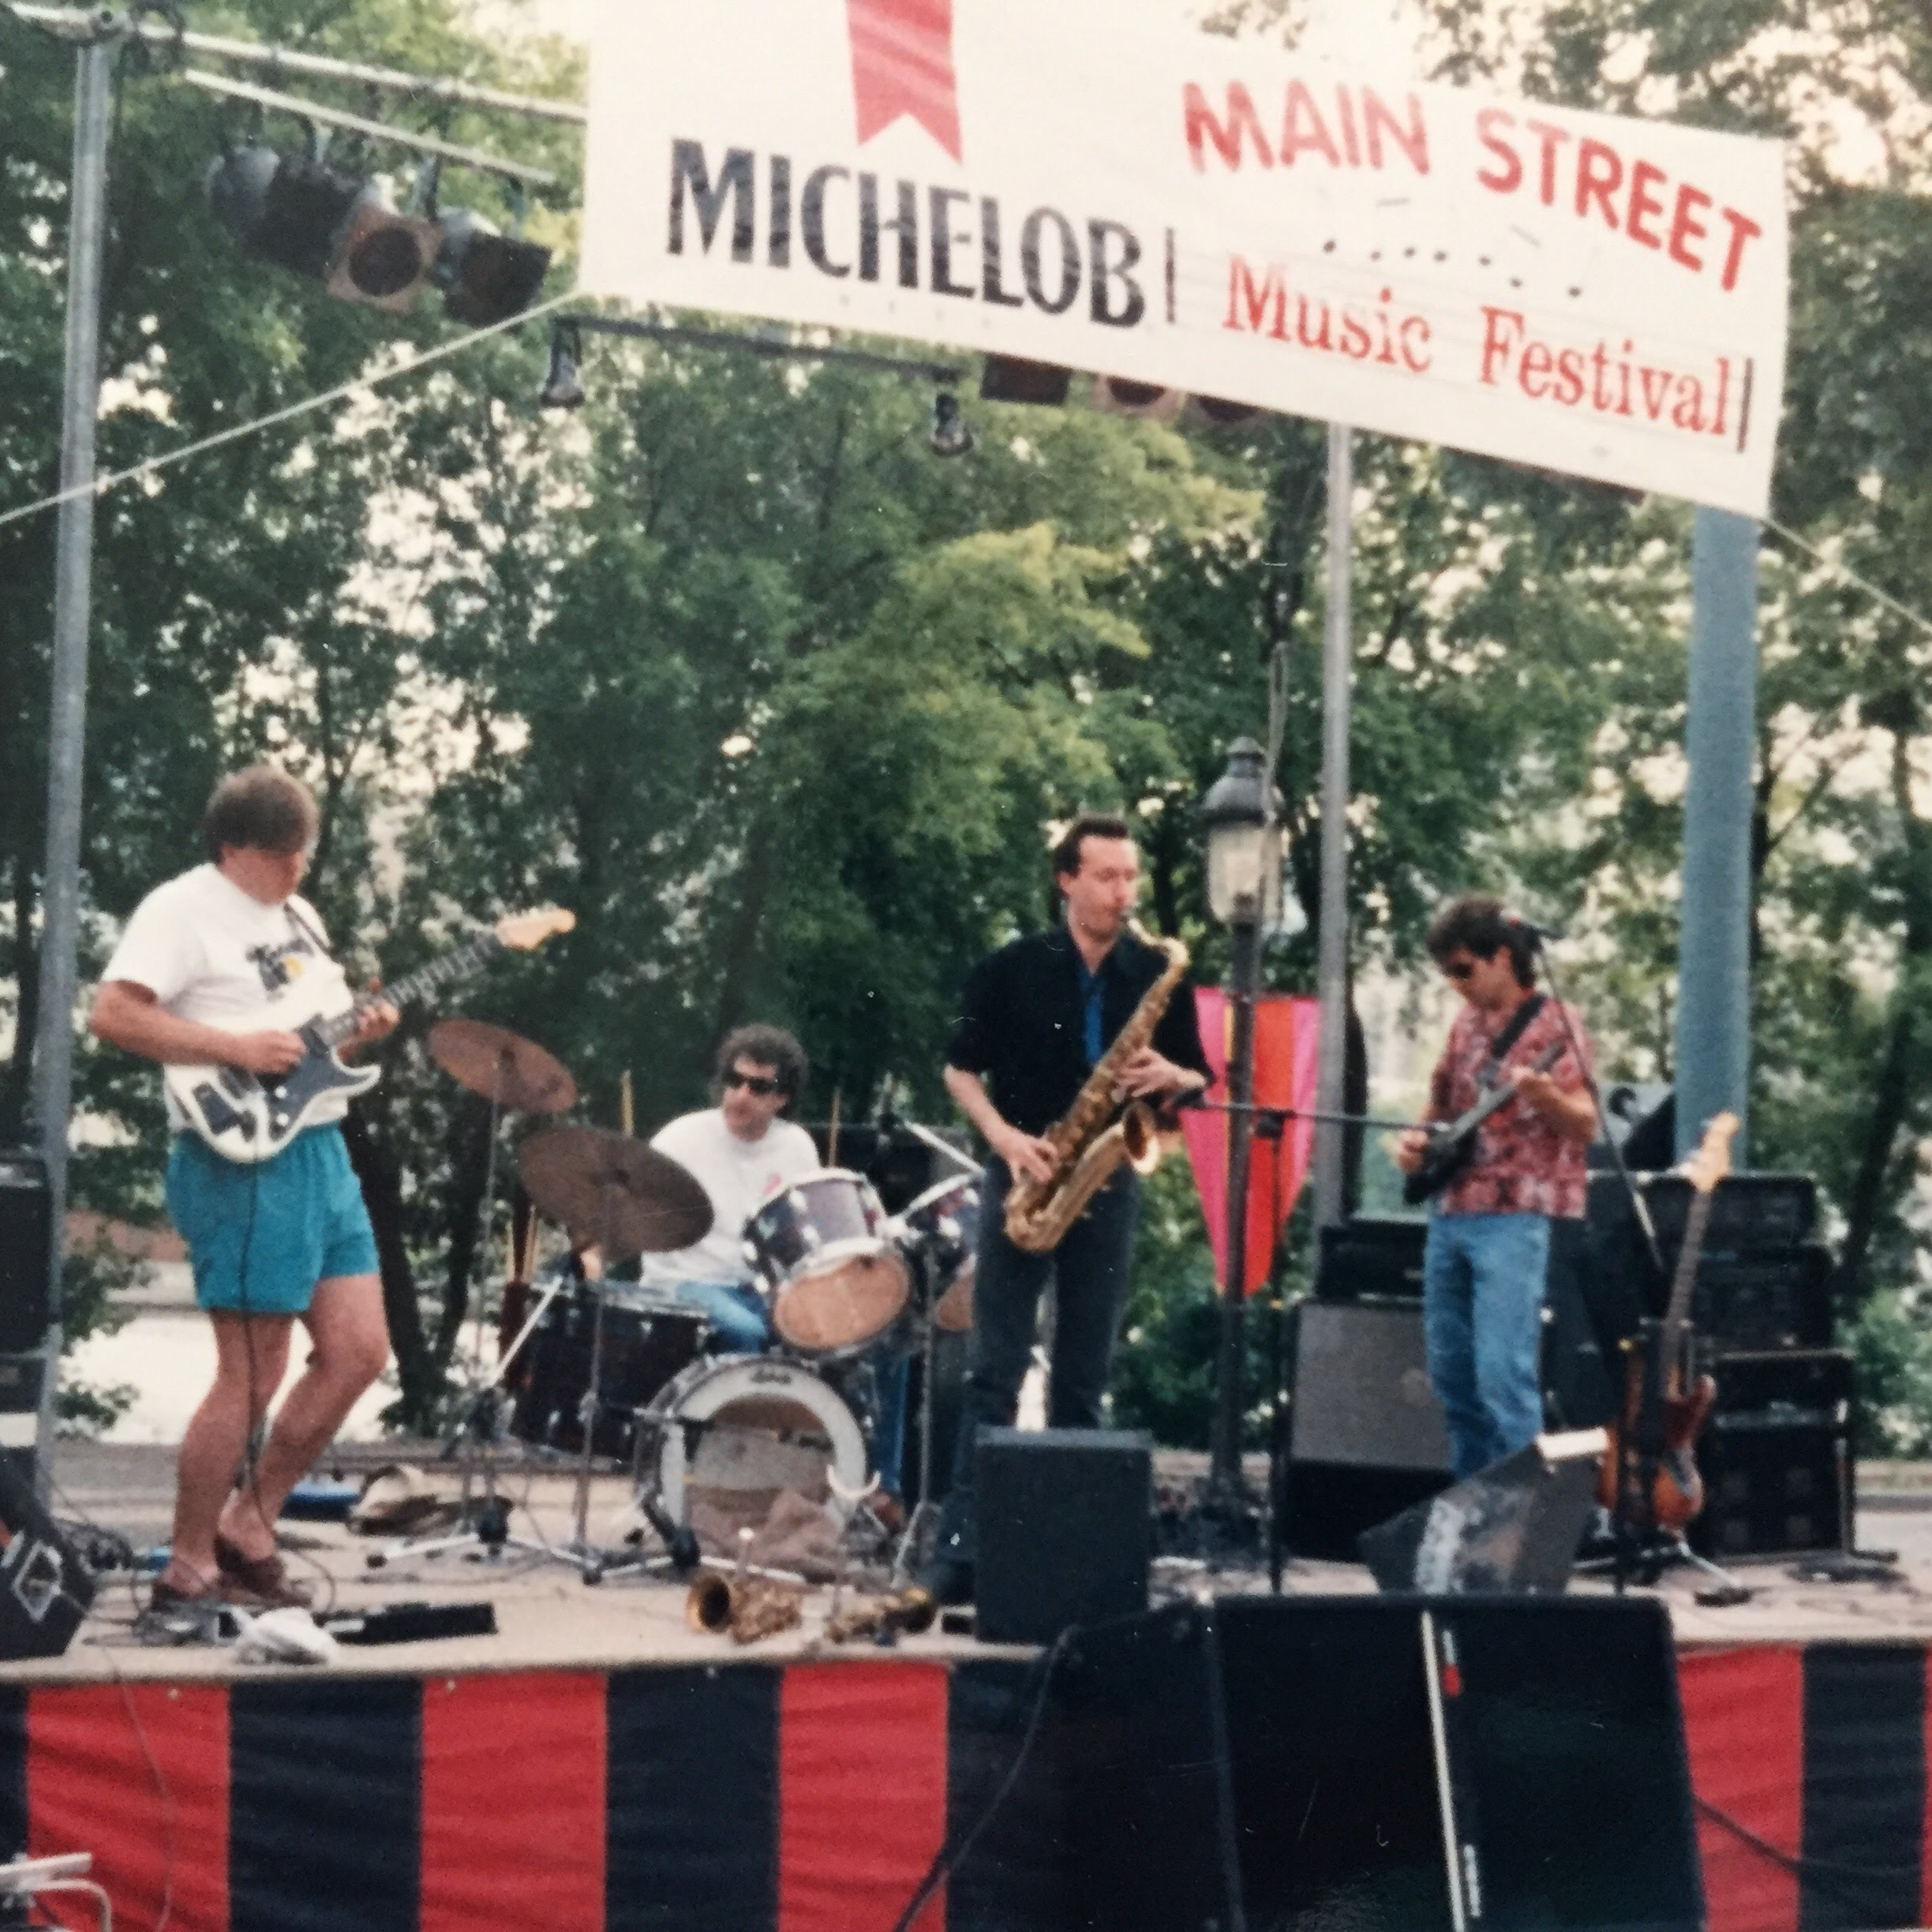 Early version of BFG: Mike Bruns, Rik Sferra, Hall Sanders, Todd Larson. Performing at the Main Street Music Festival, Minneapolis. Prior to 1993.